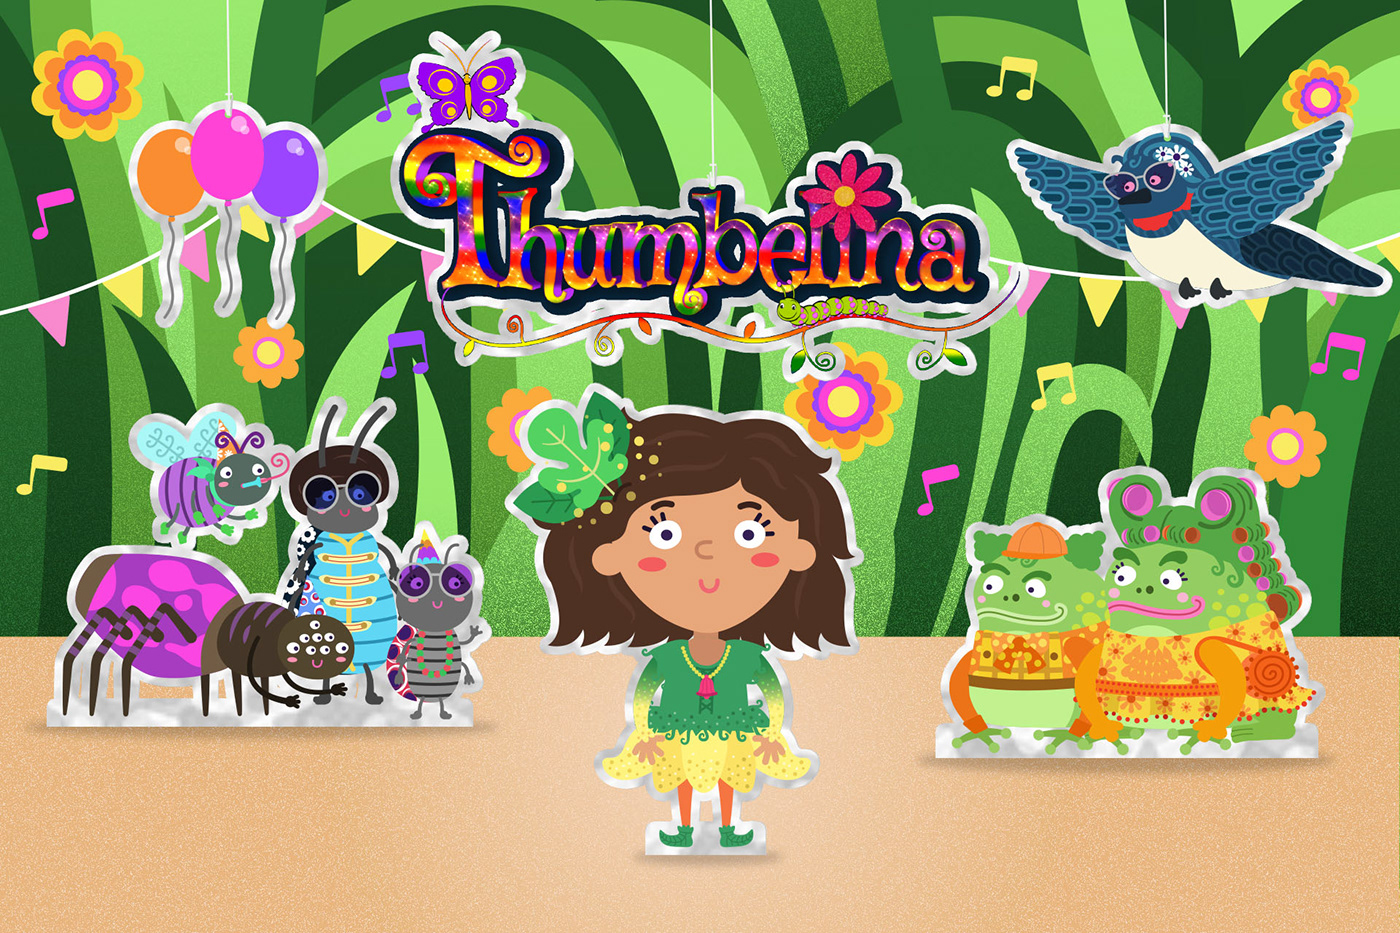 Thumbelina fairy tale cbeebies children Storytime interactive story fairy play BBC